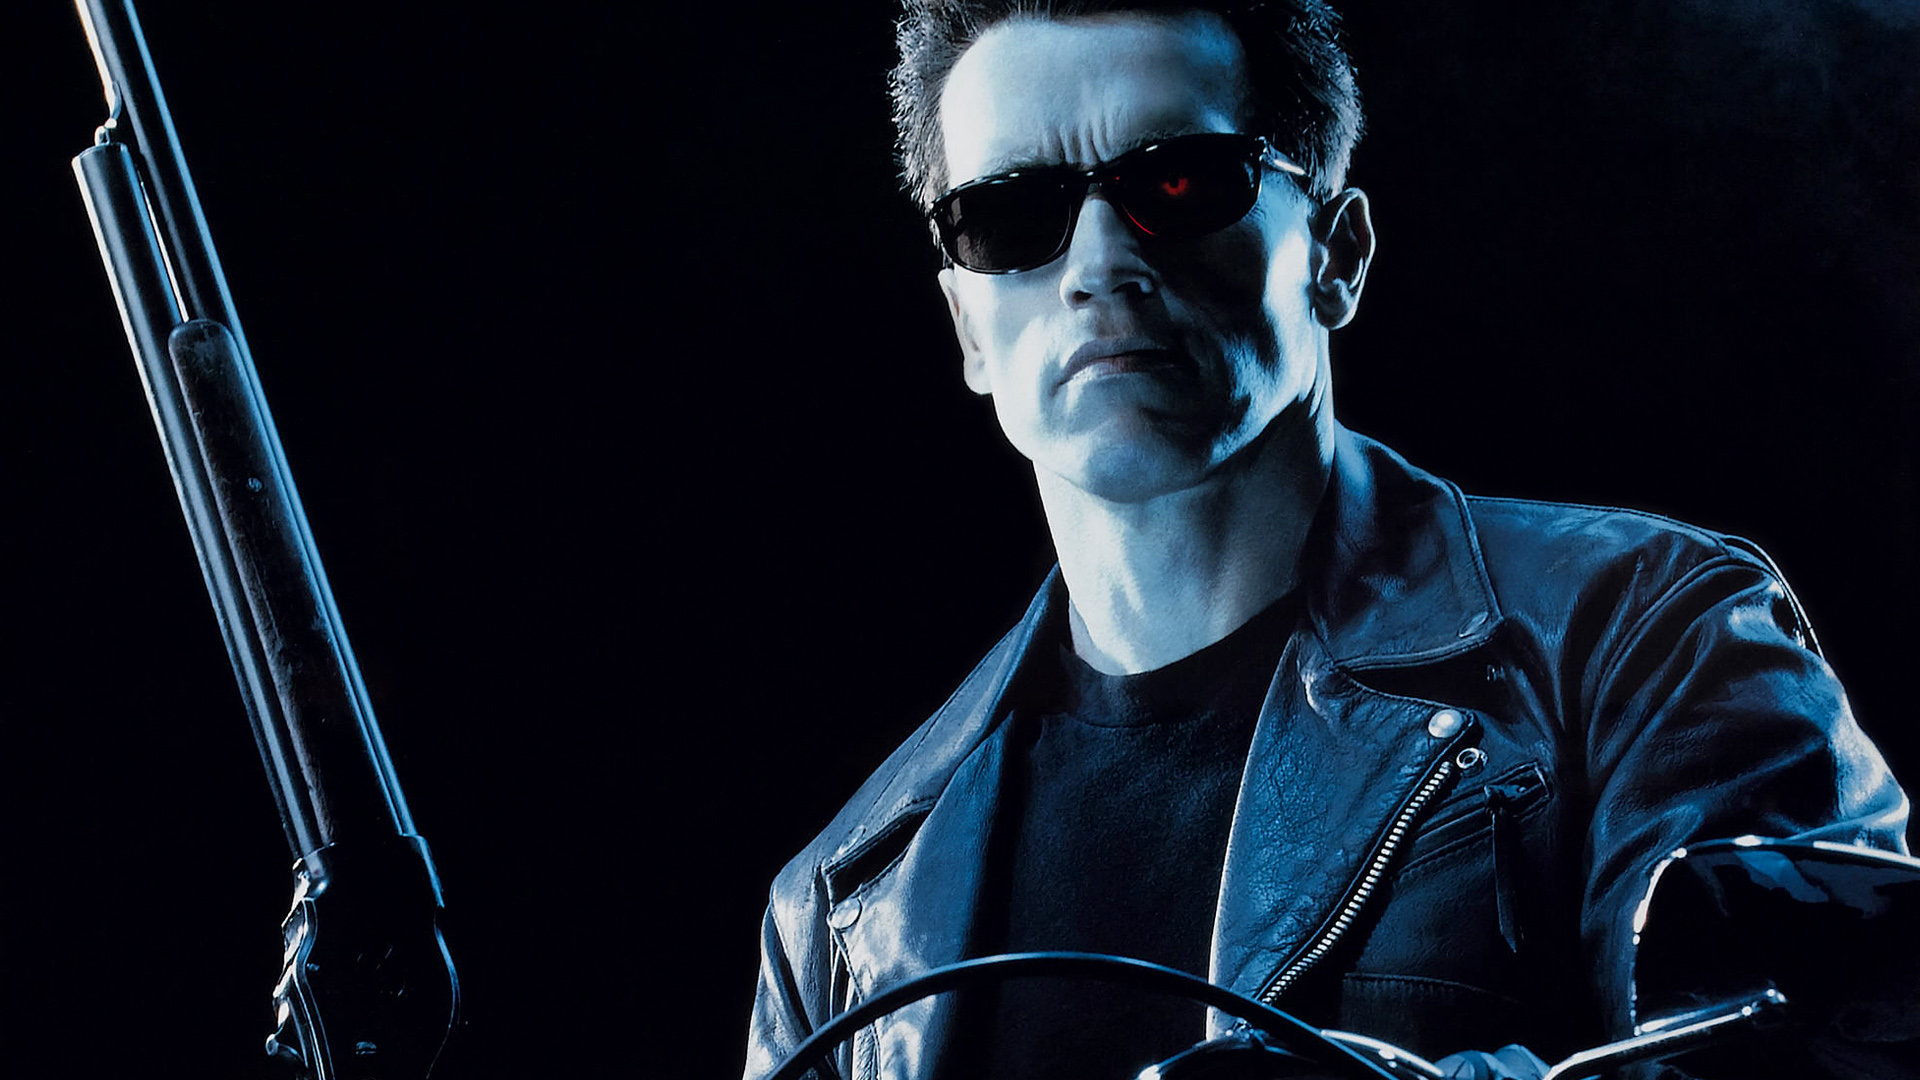 This is a Terminator 2 - I'll Be Back wallpaper. This Terminator 2 - I'll Be